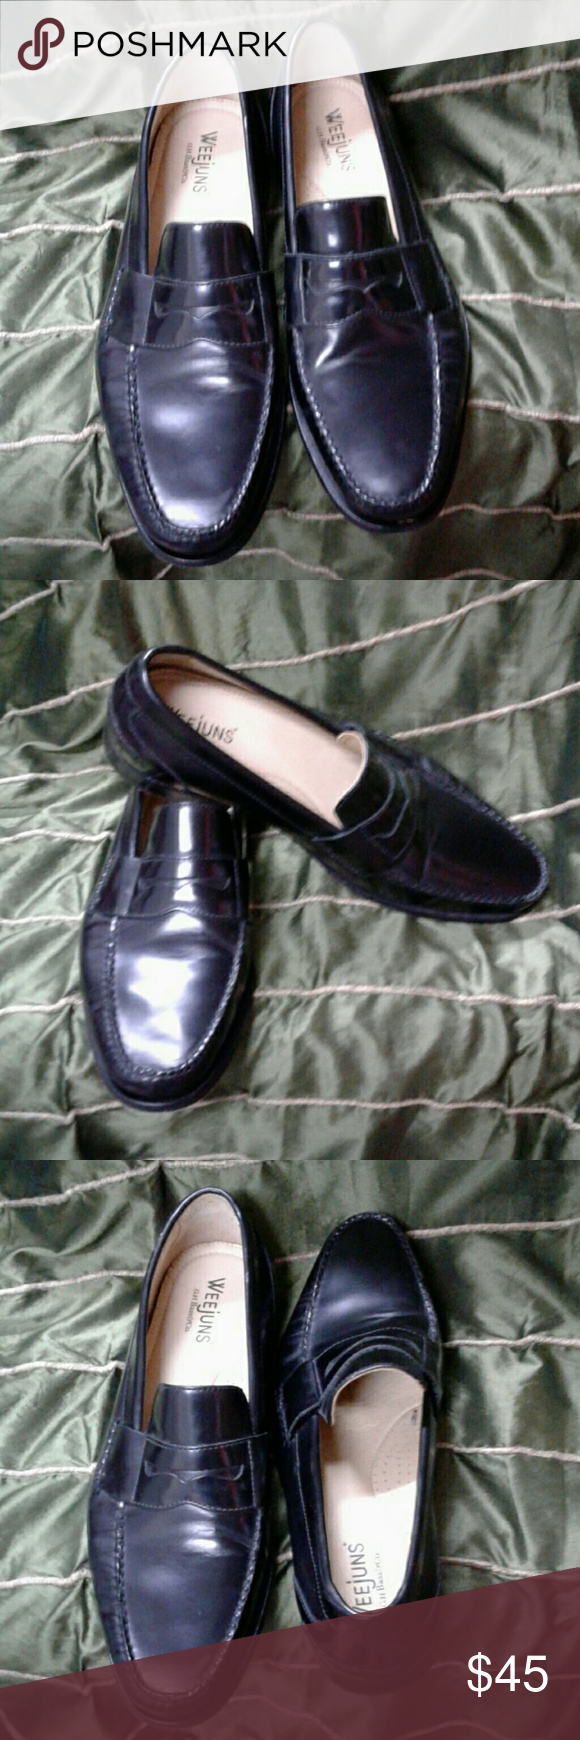 """G.H. BASS WEEJUN """"EDWARD"""" BLACK PENNY LOAFERS CLASSIC ..."""